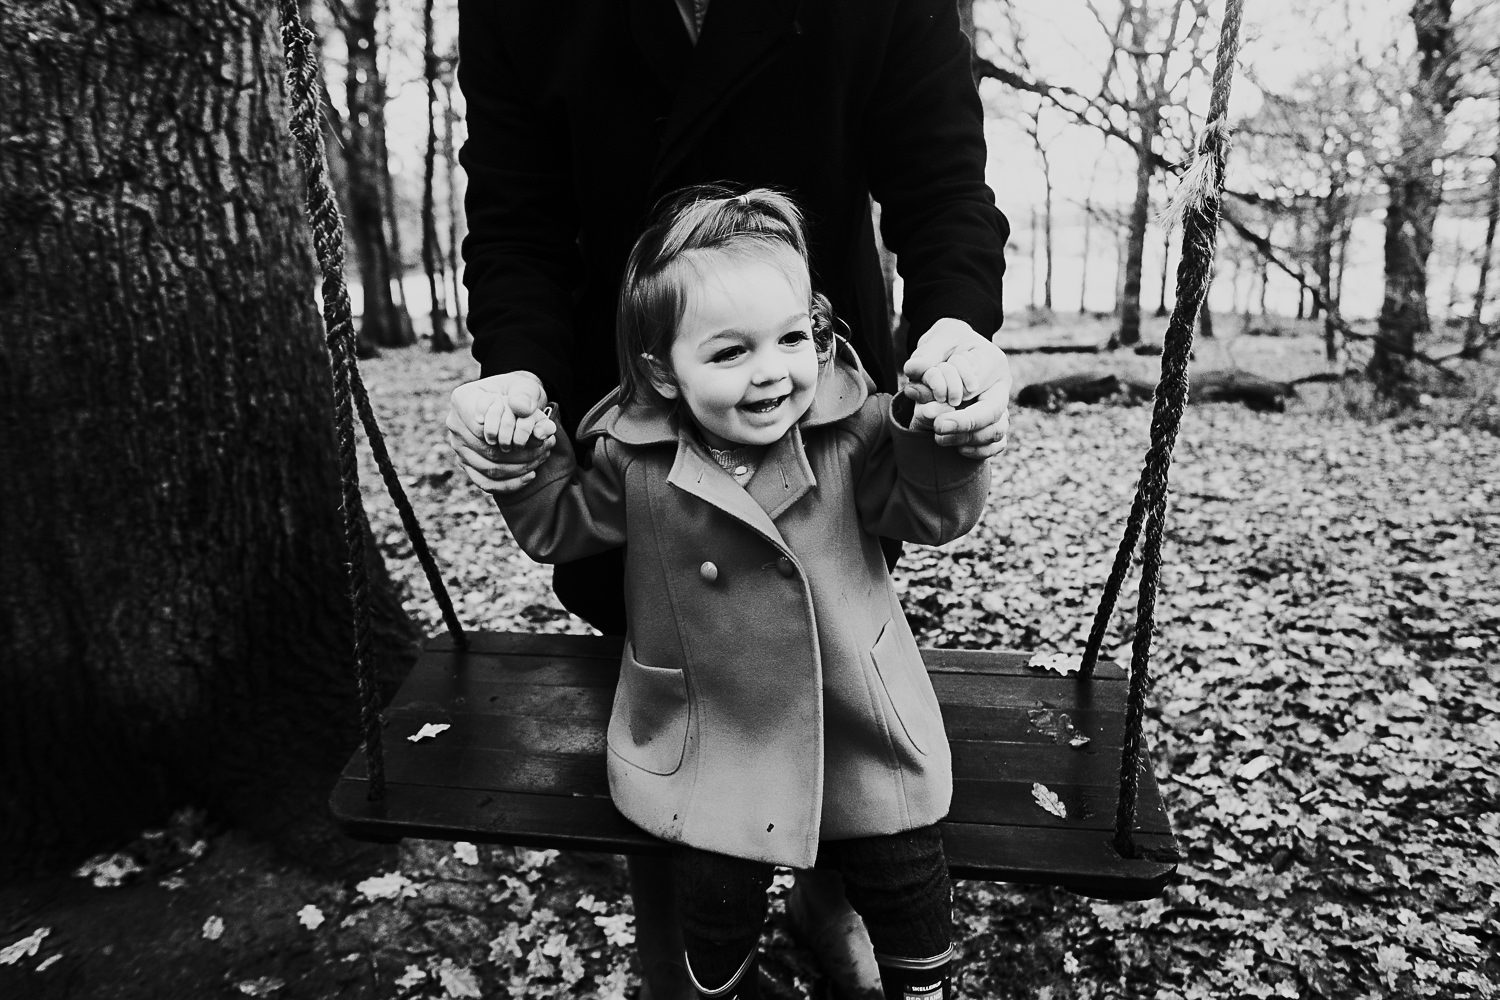 Father and daugher on swing in woods